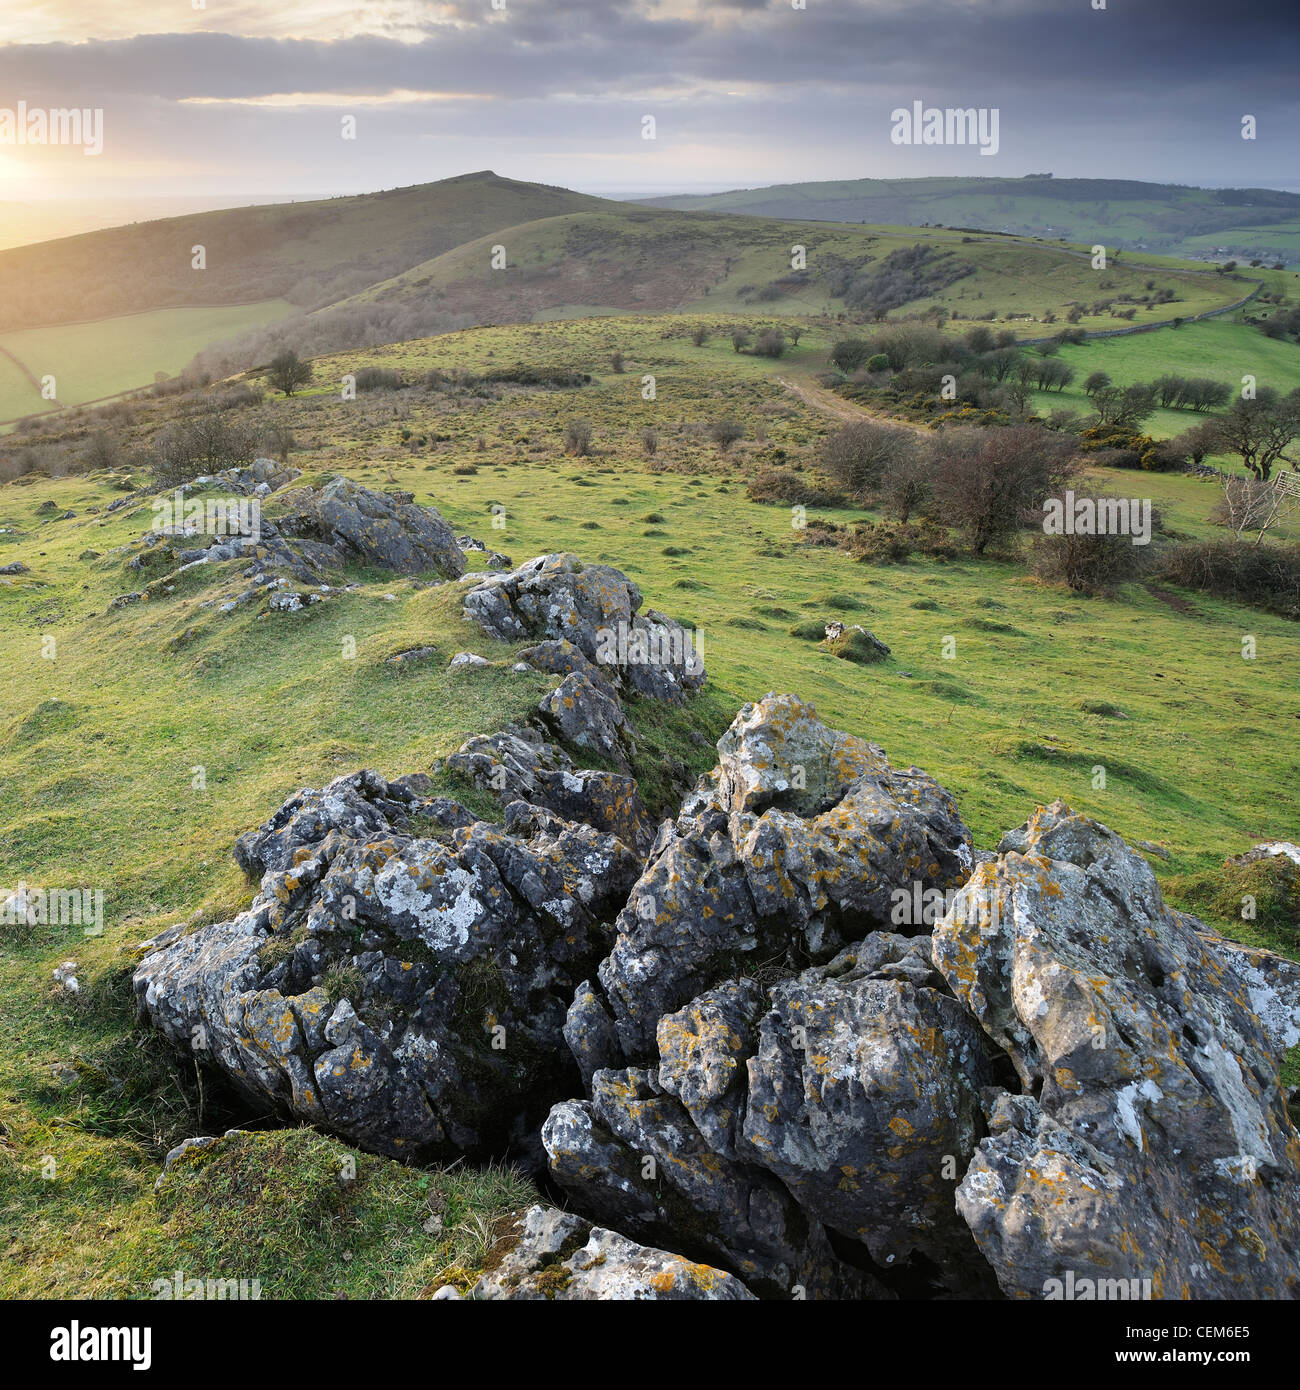 A dramatic view of Crook Peak from Wavering Down, Somerset, UK. - Stock Image